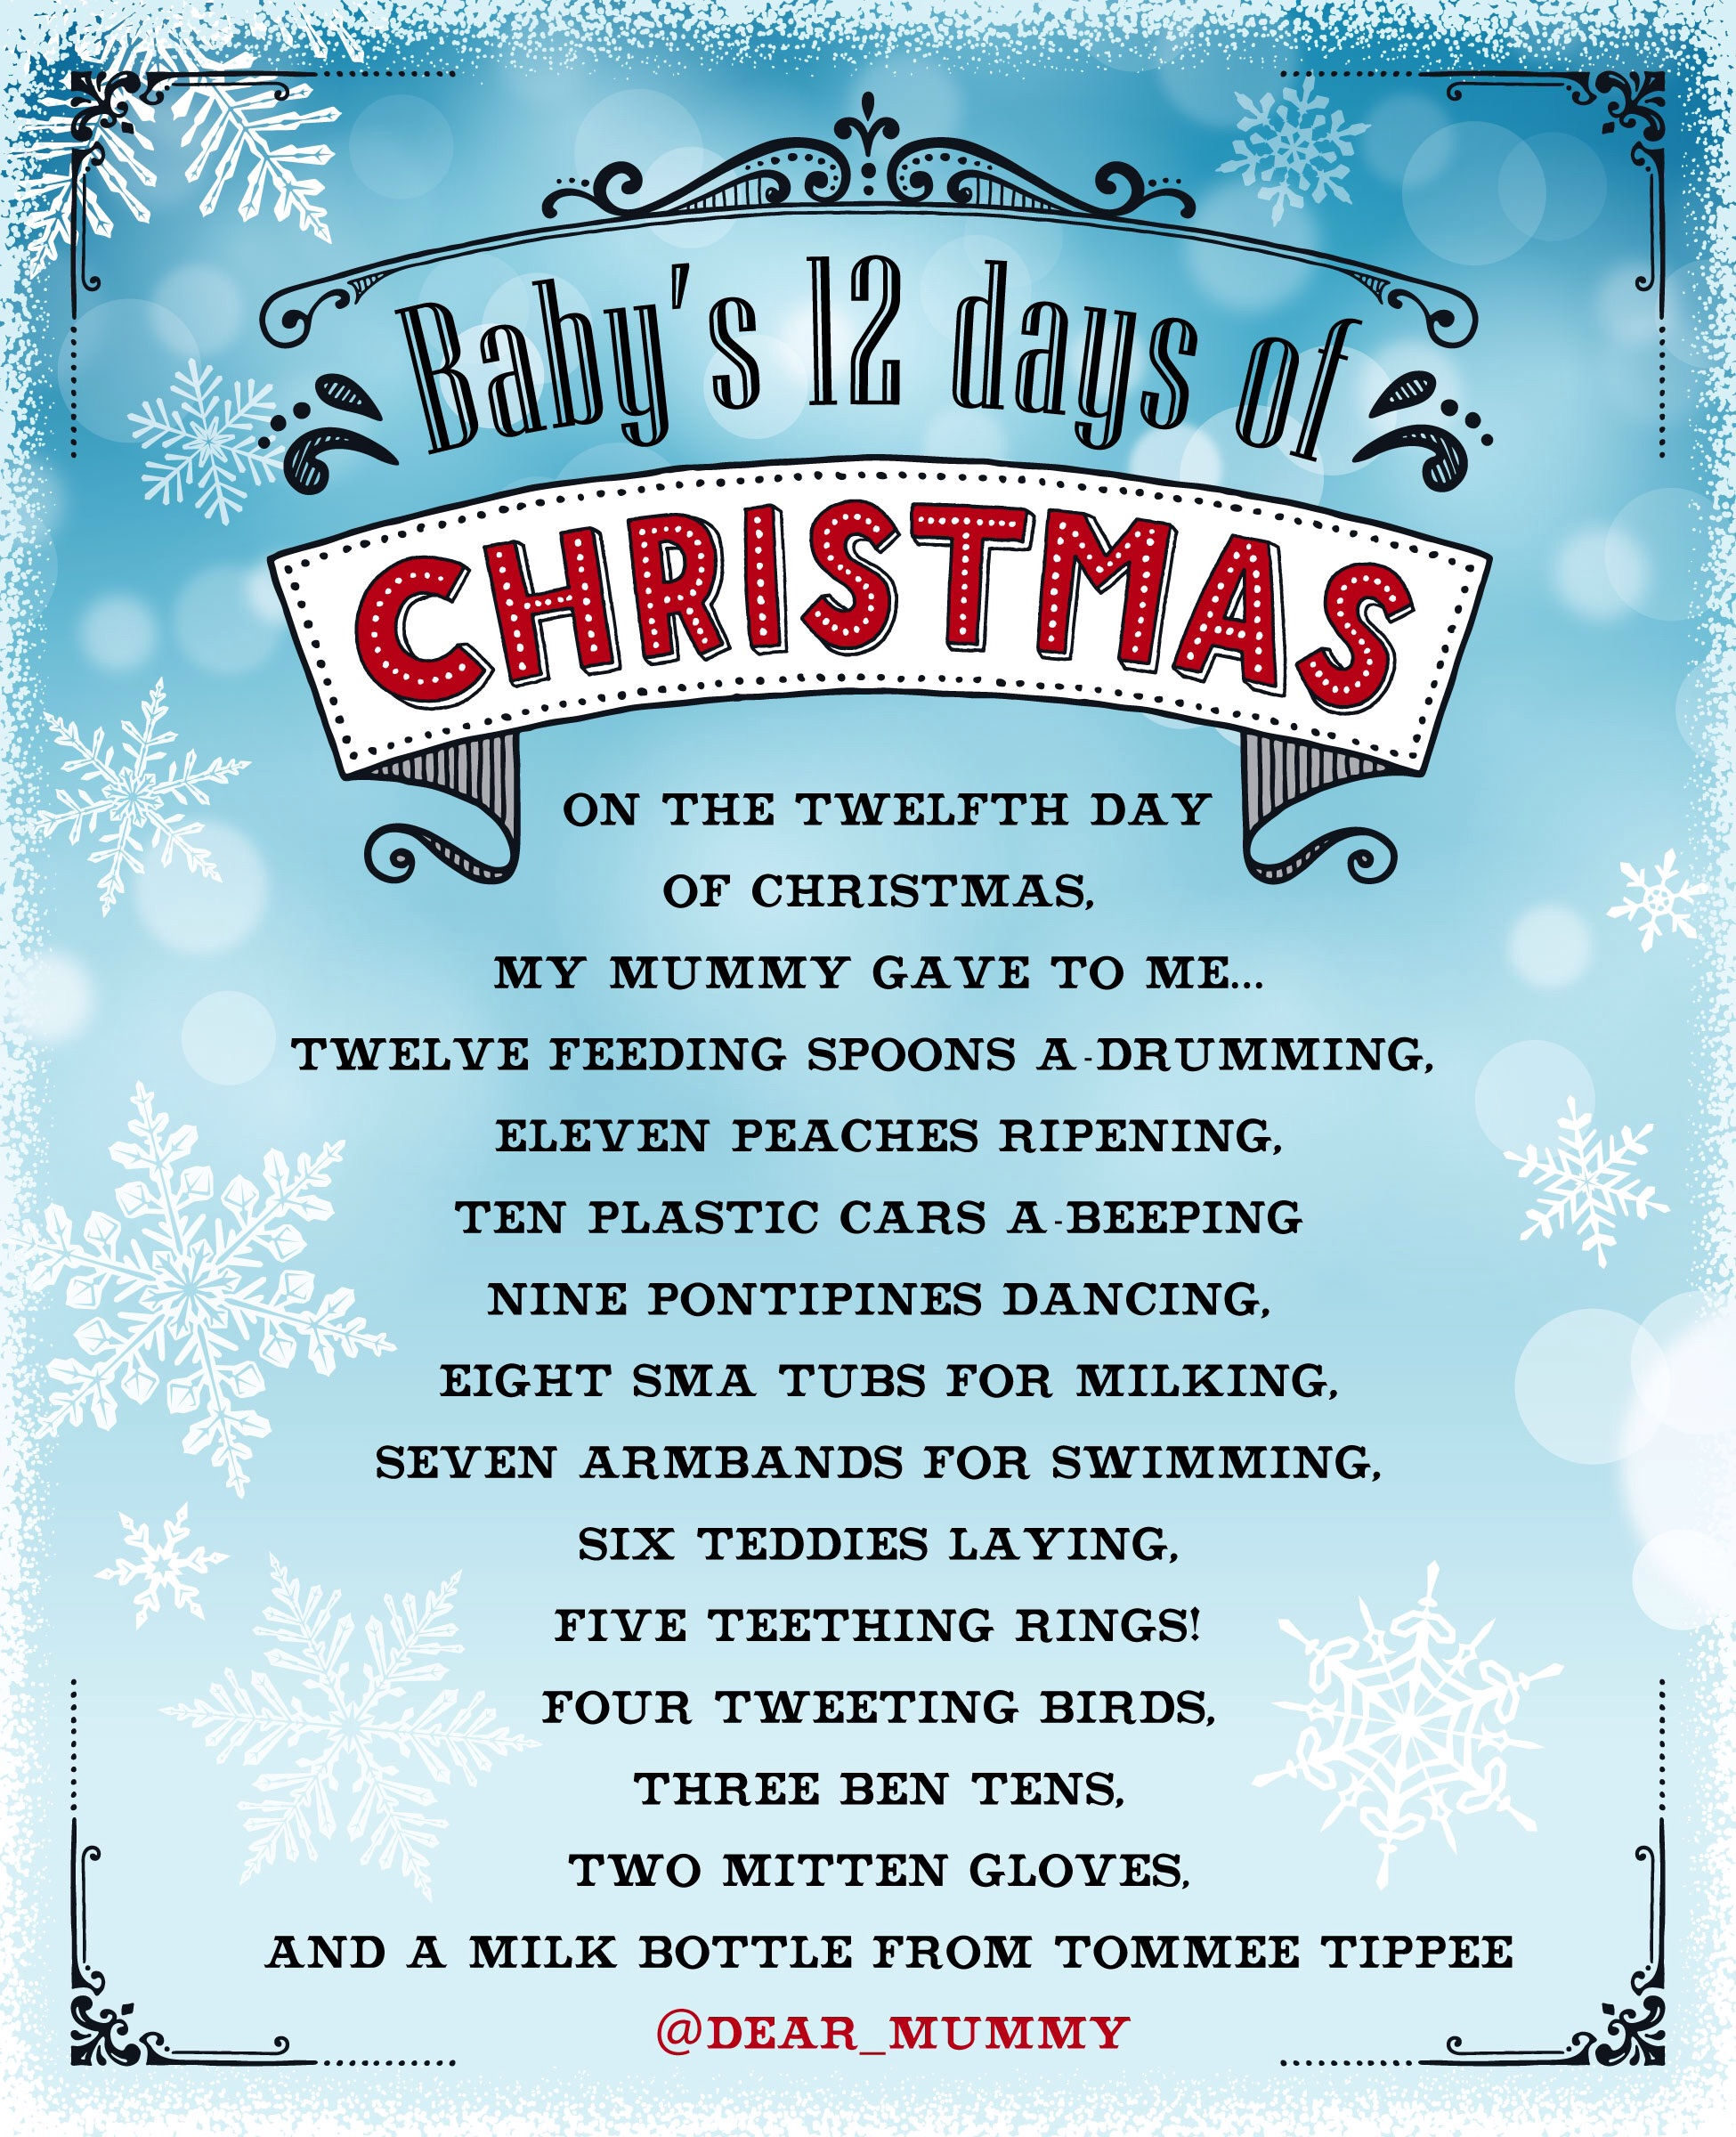 My 12 days ofChristmas!